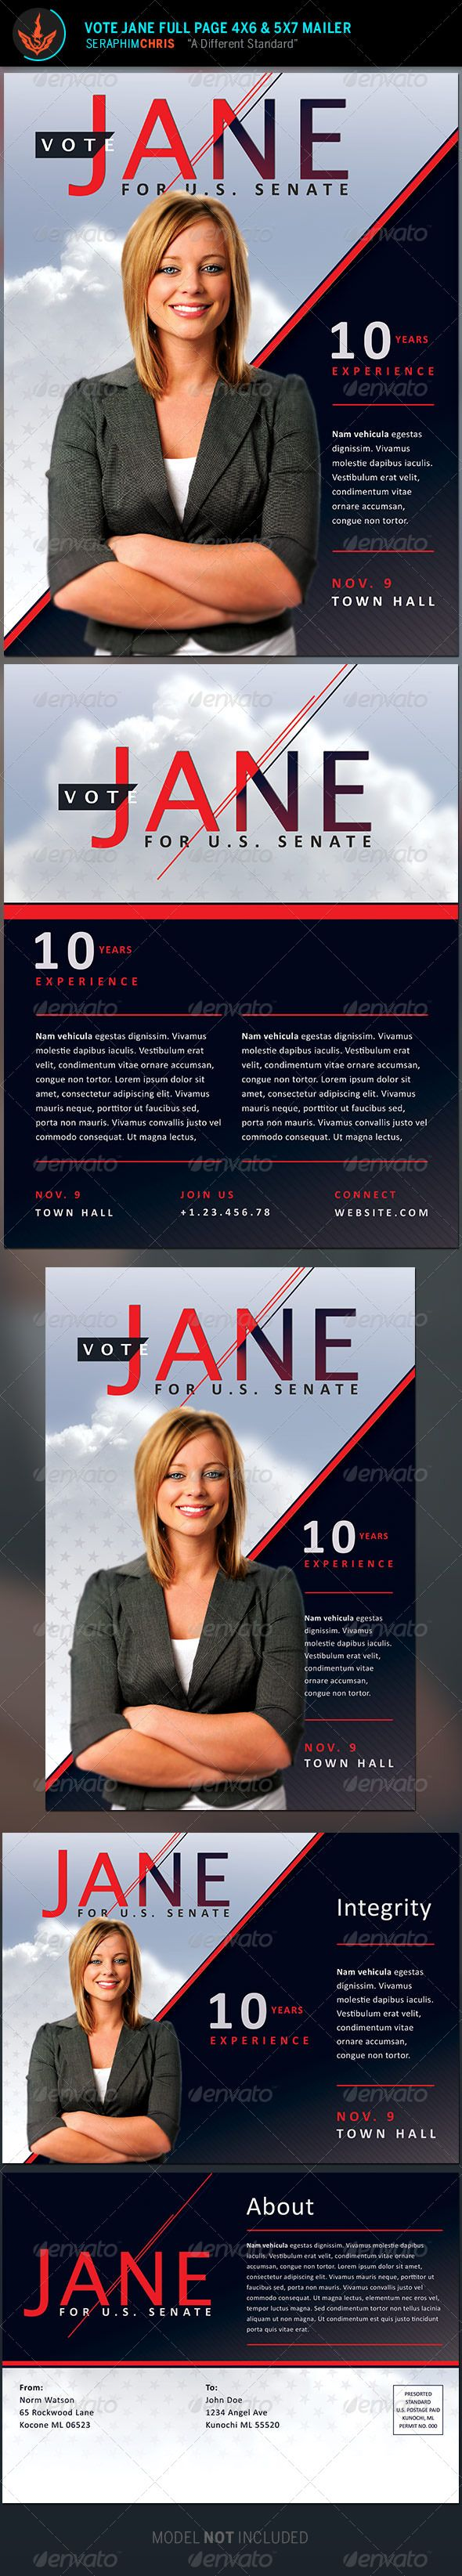 campaign mailer template - 1732 best images about political logos on pinterest